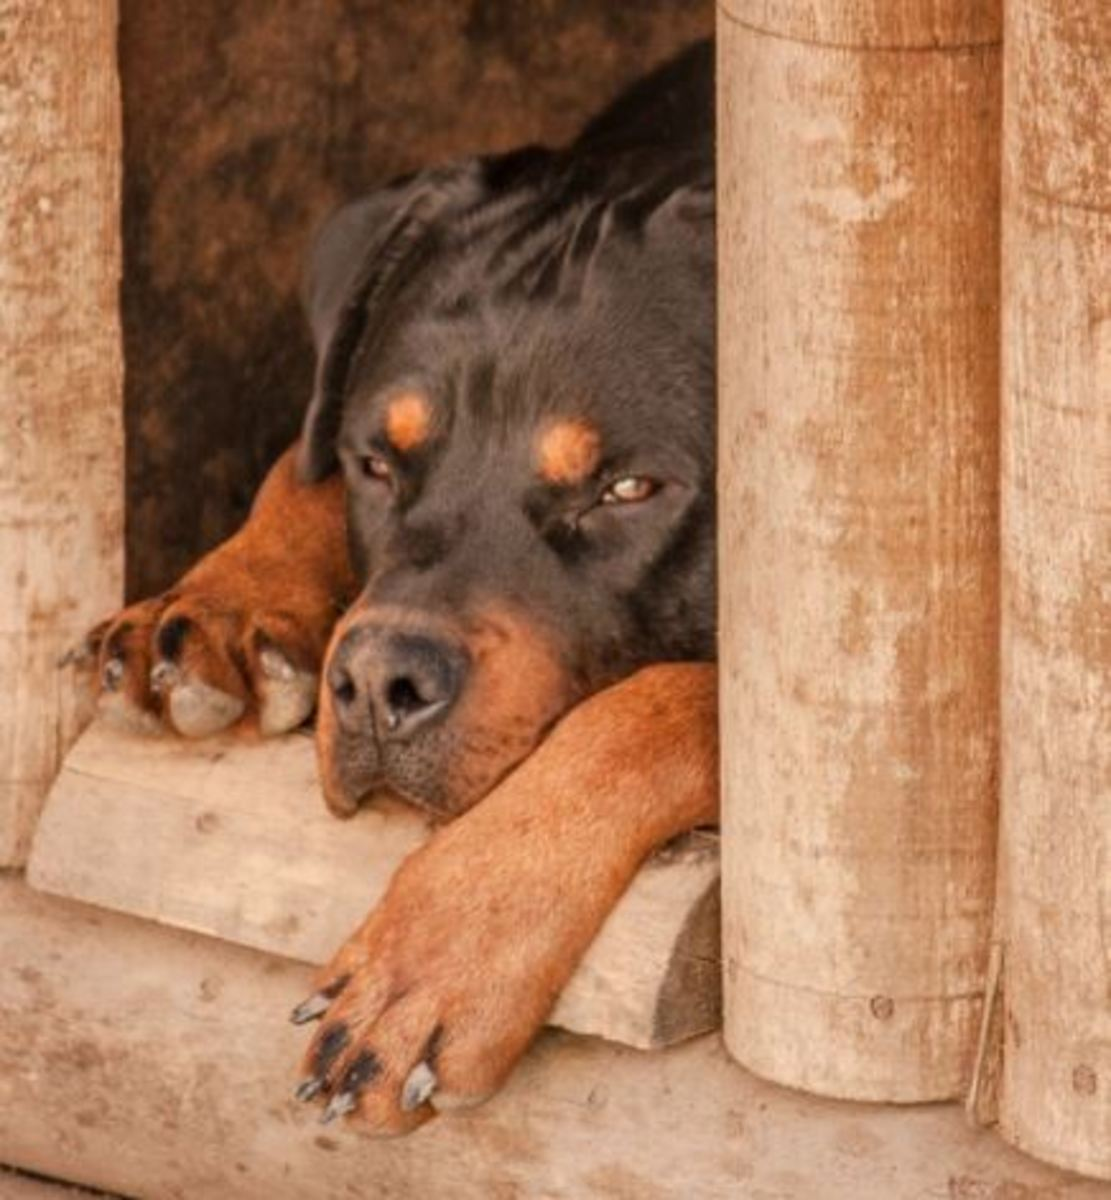 Osteosarcoma in dogs affects Rottweilers among other breeds.